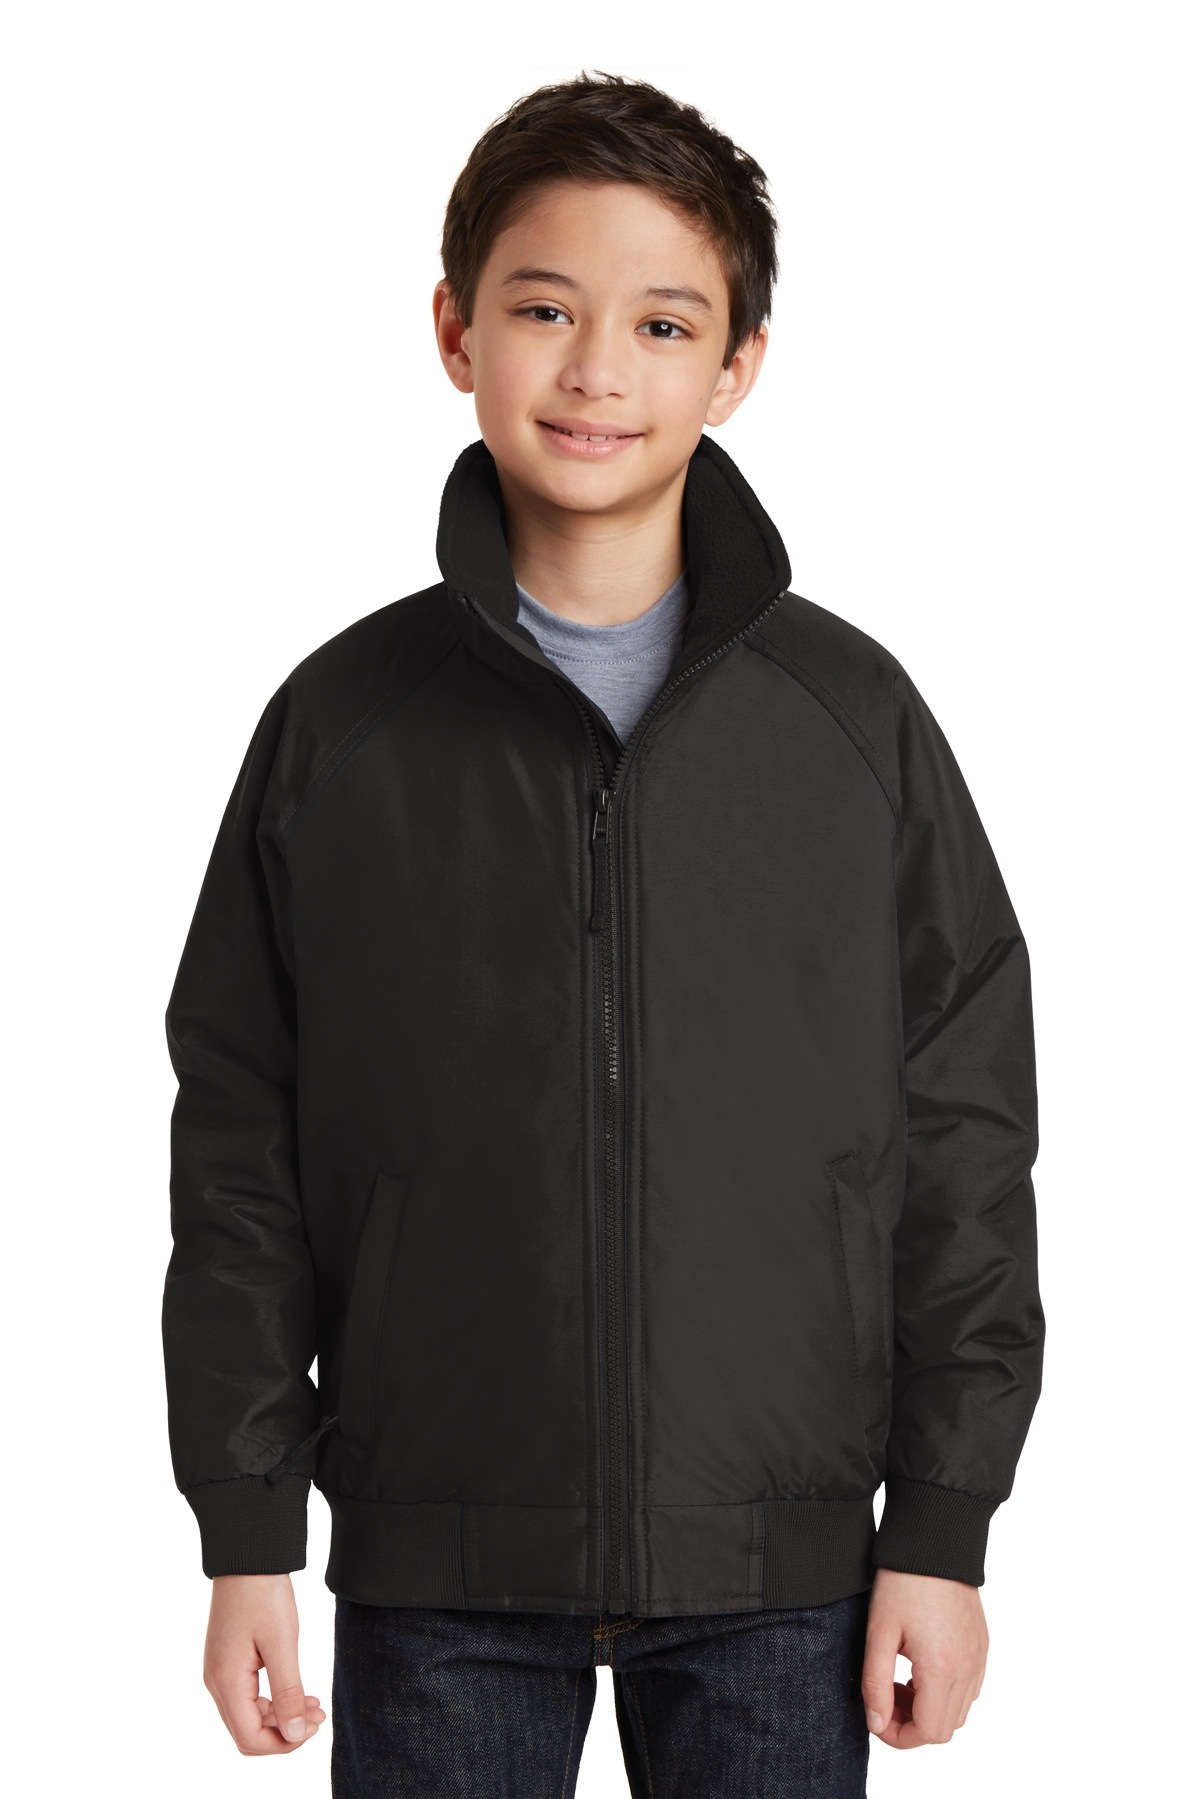 Y328 Port Authority Youth Charger Jacket